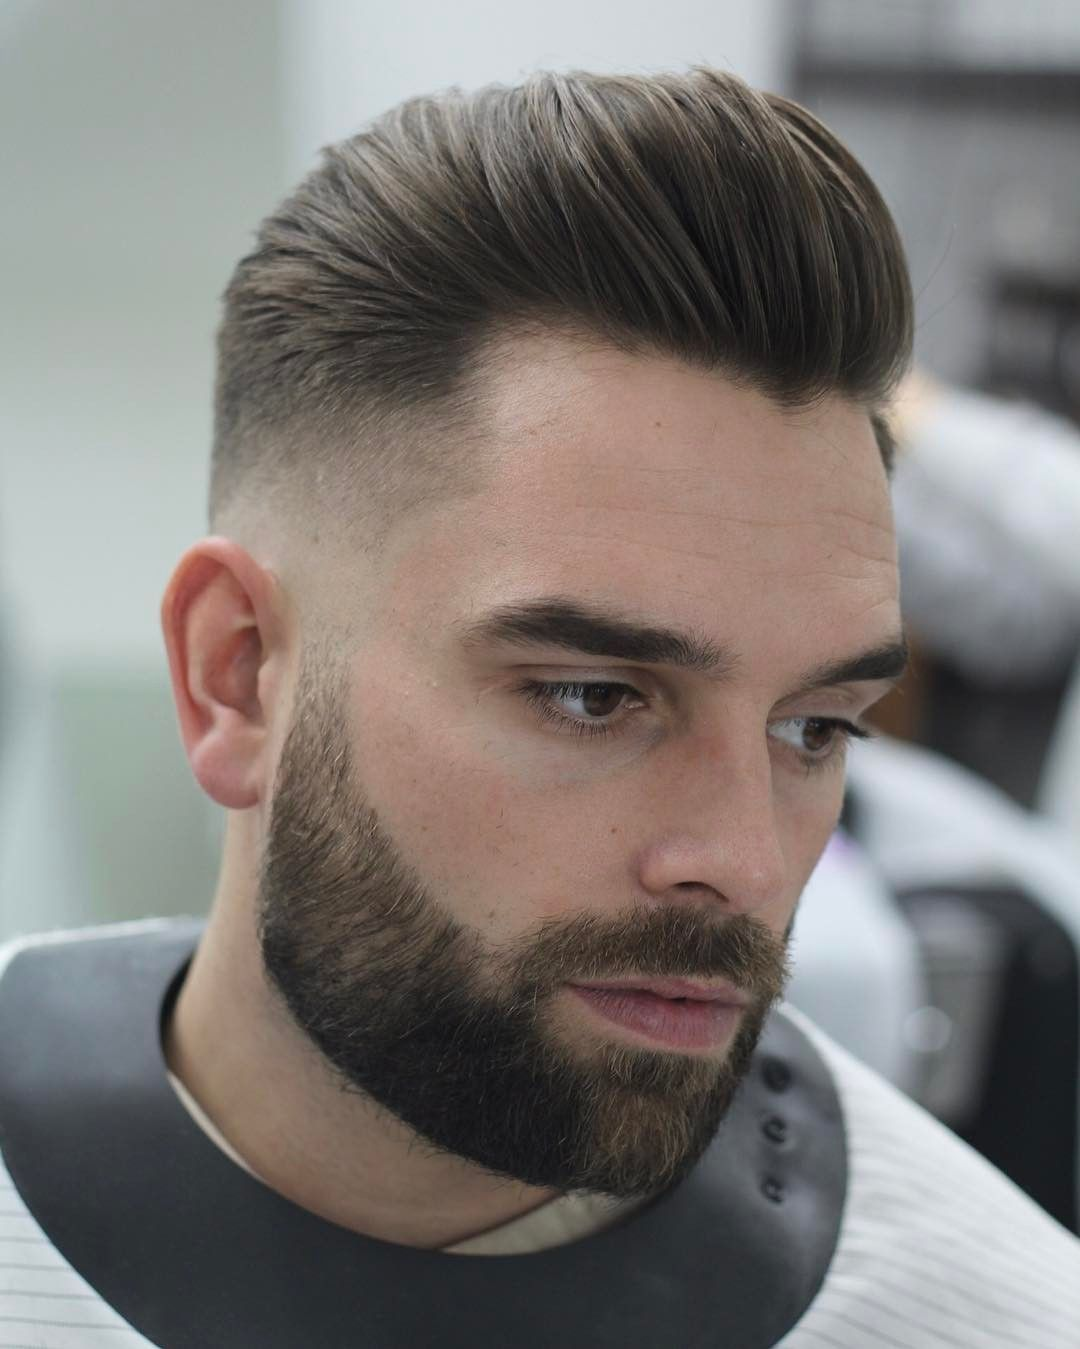 Awesome 70 Hottest Men S Hairstyles For Straight Hair Try Something New Ivy League Haircut Straight Hairstyles Men Haircut Styles